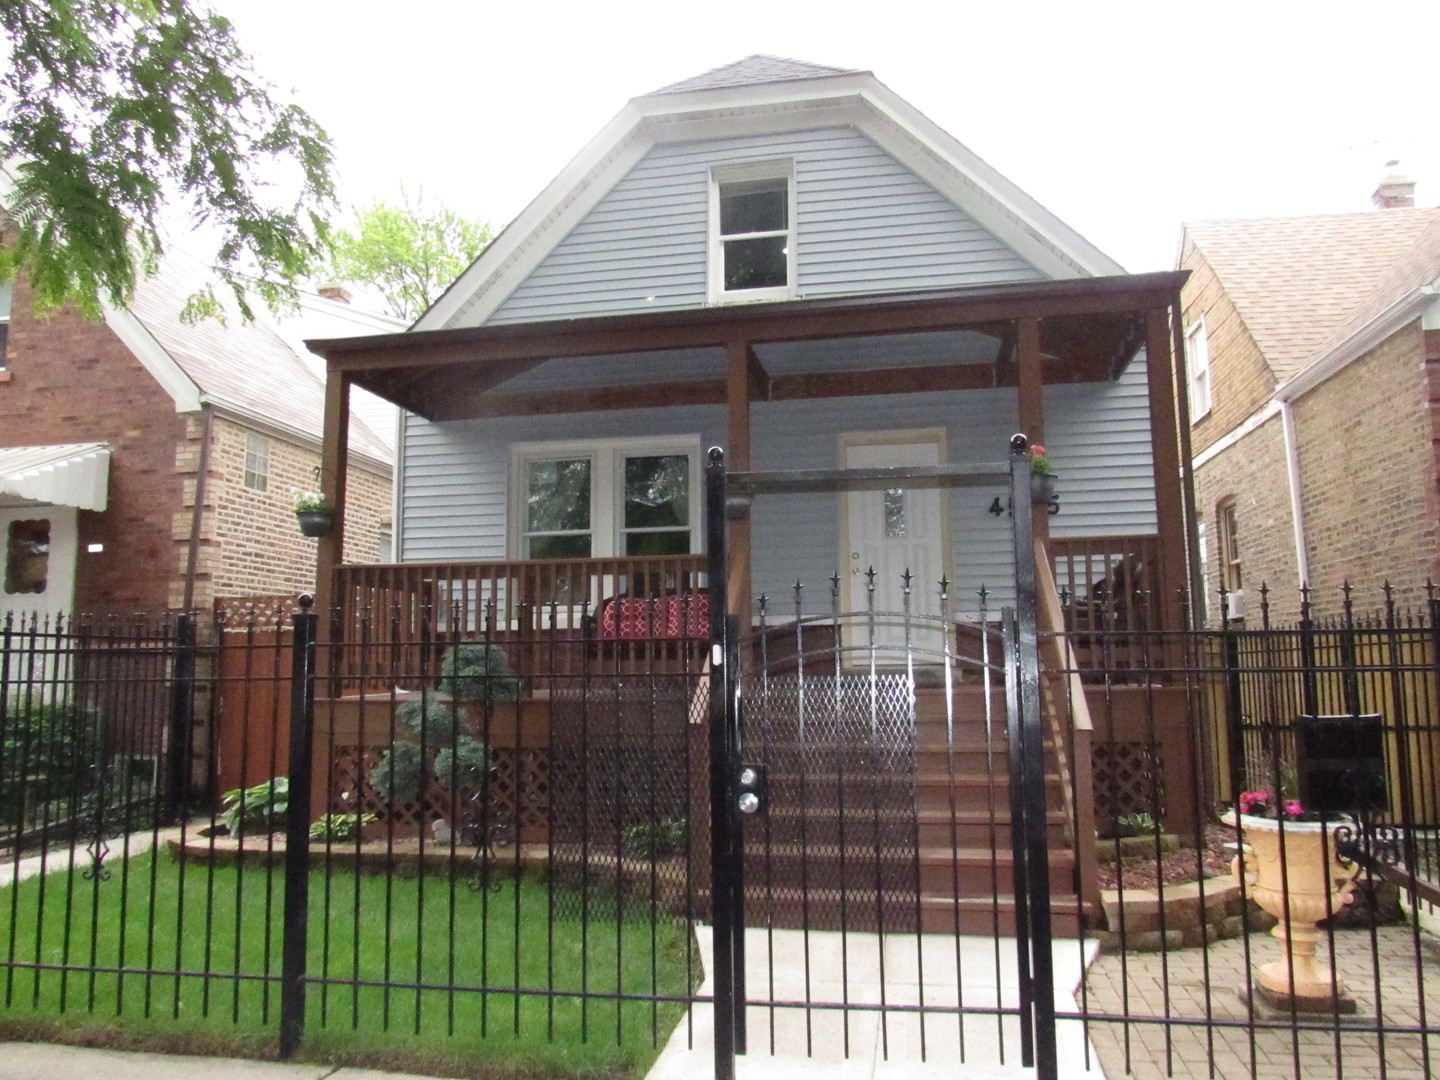 4545 WEST MONTANA STREET, CHICAGO, IL 60639